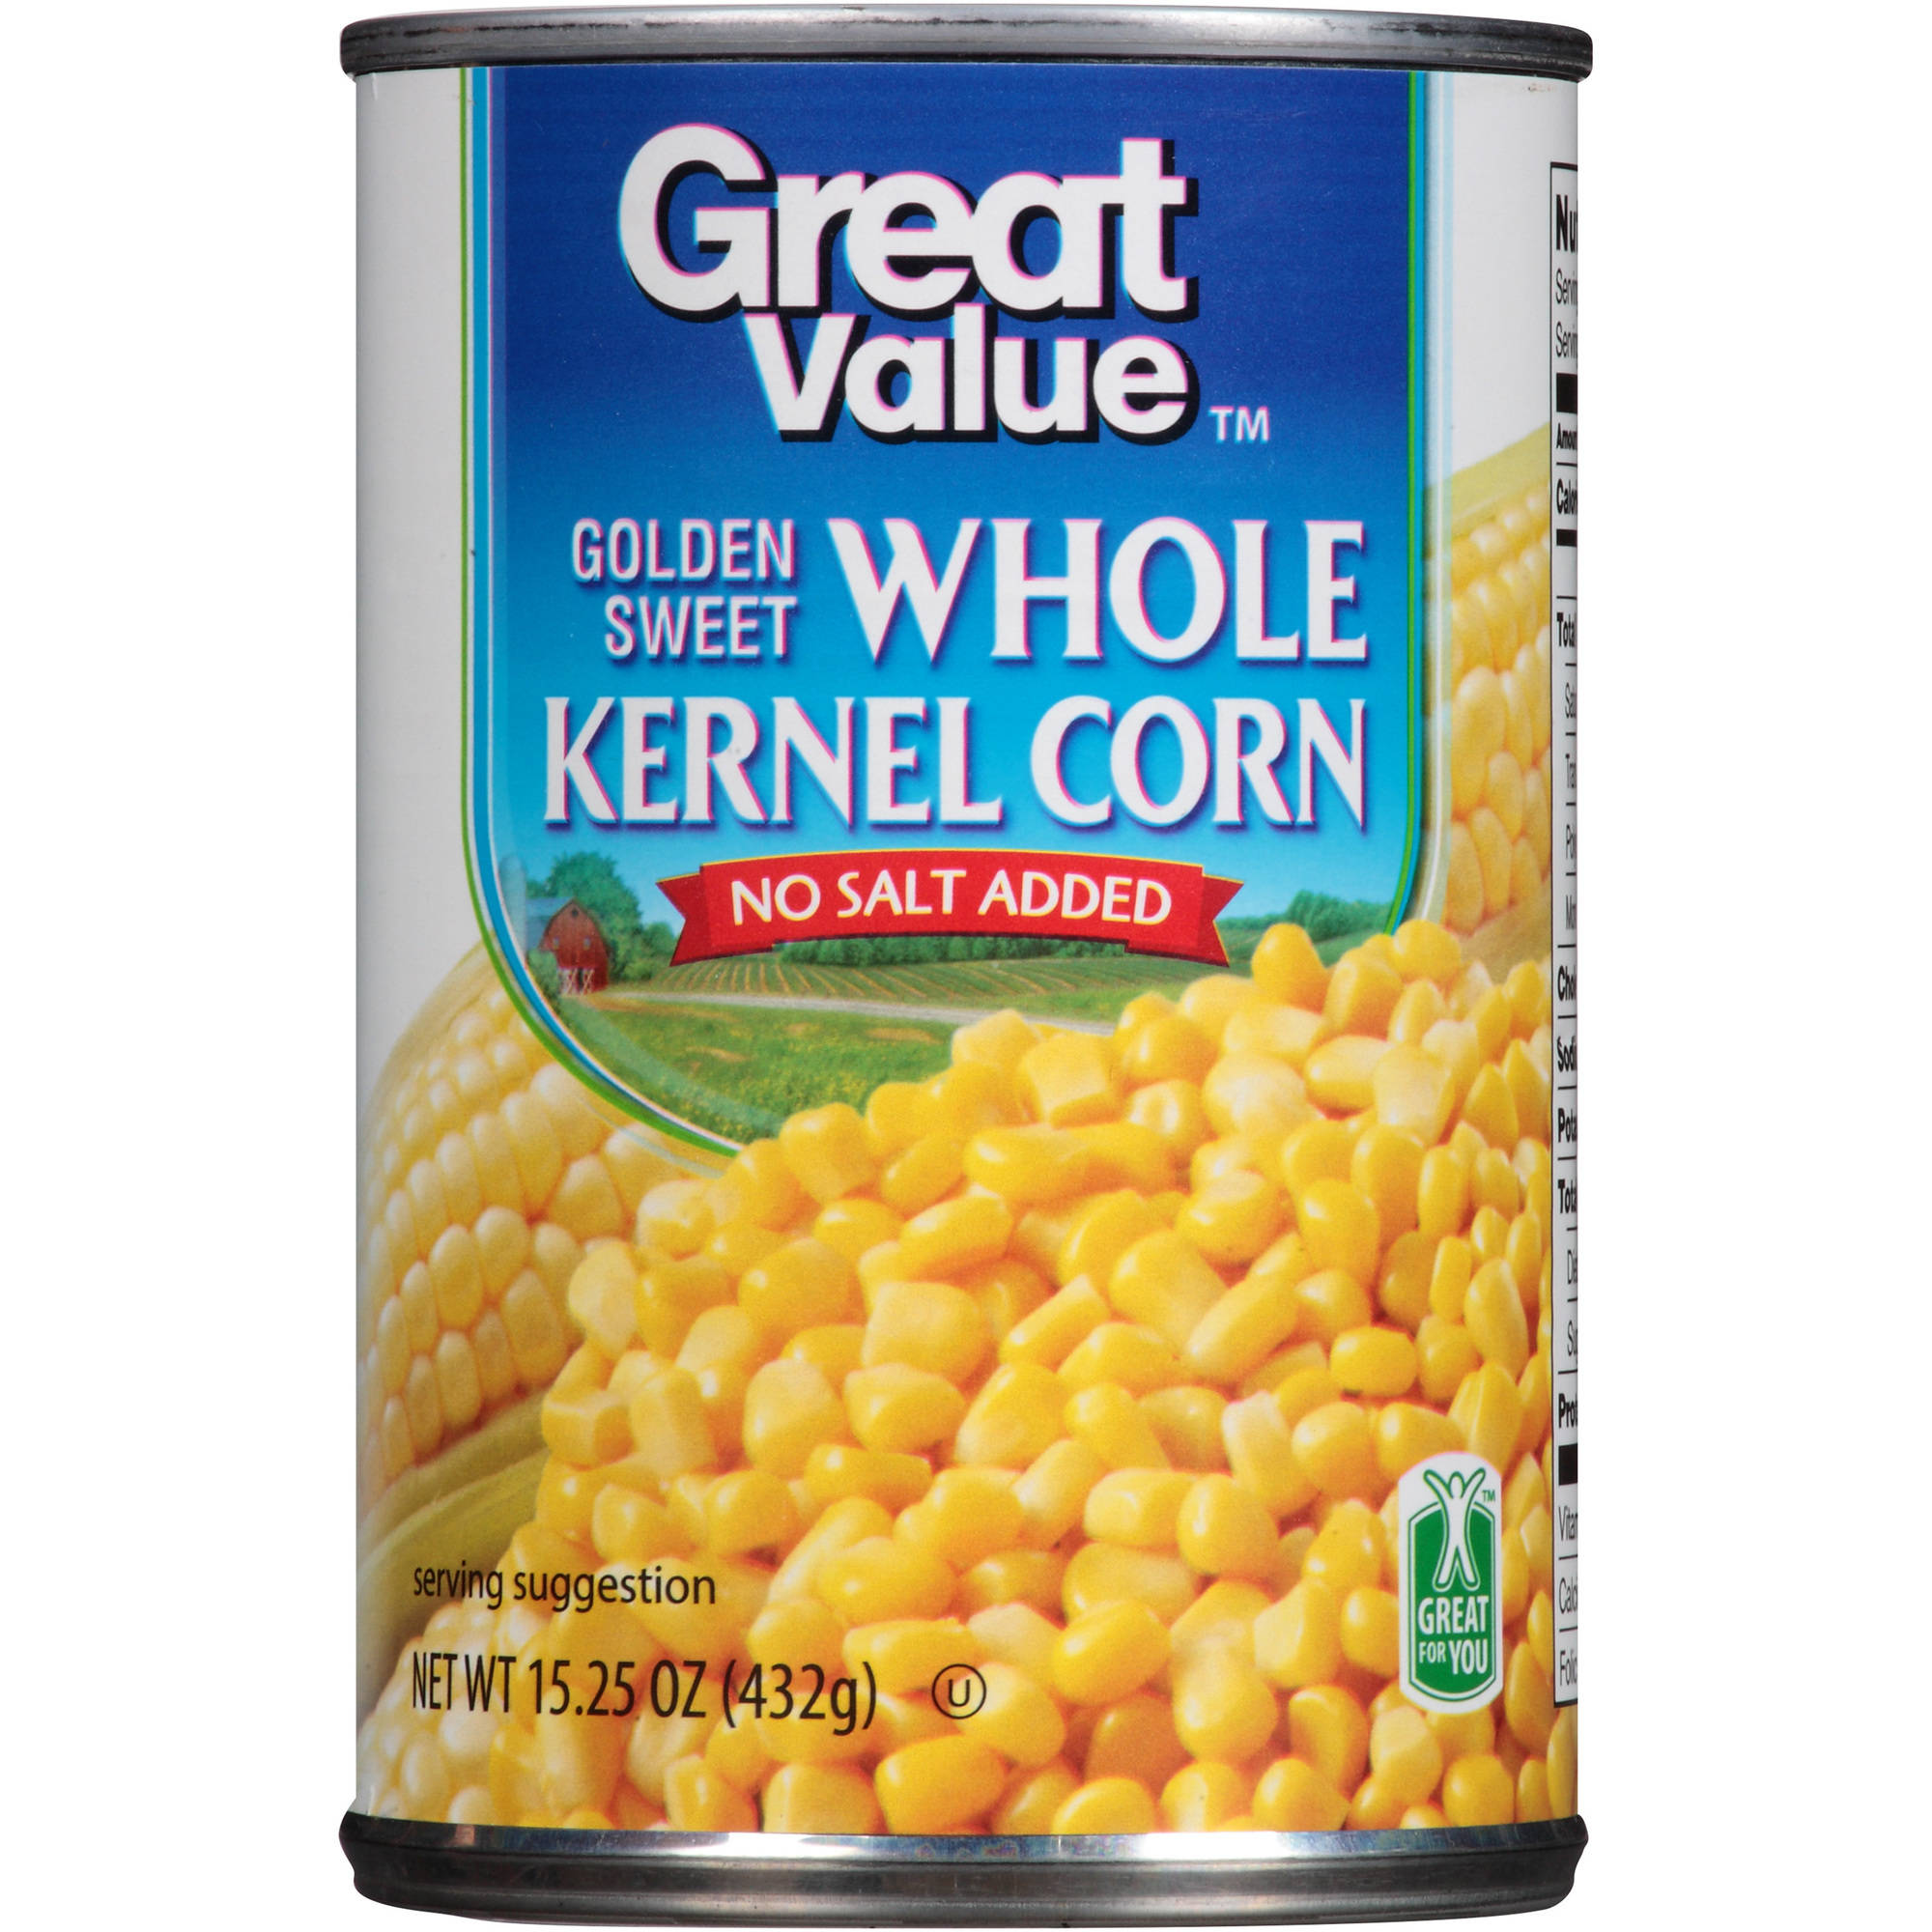 Great Value: Golden Sweet Whole Kernel No Salt Added Corn, 15.25 oz